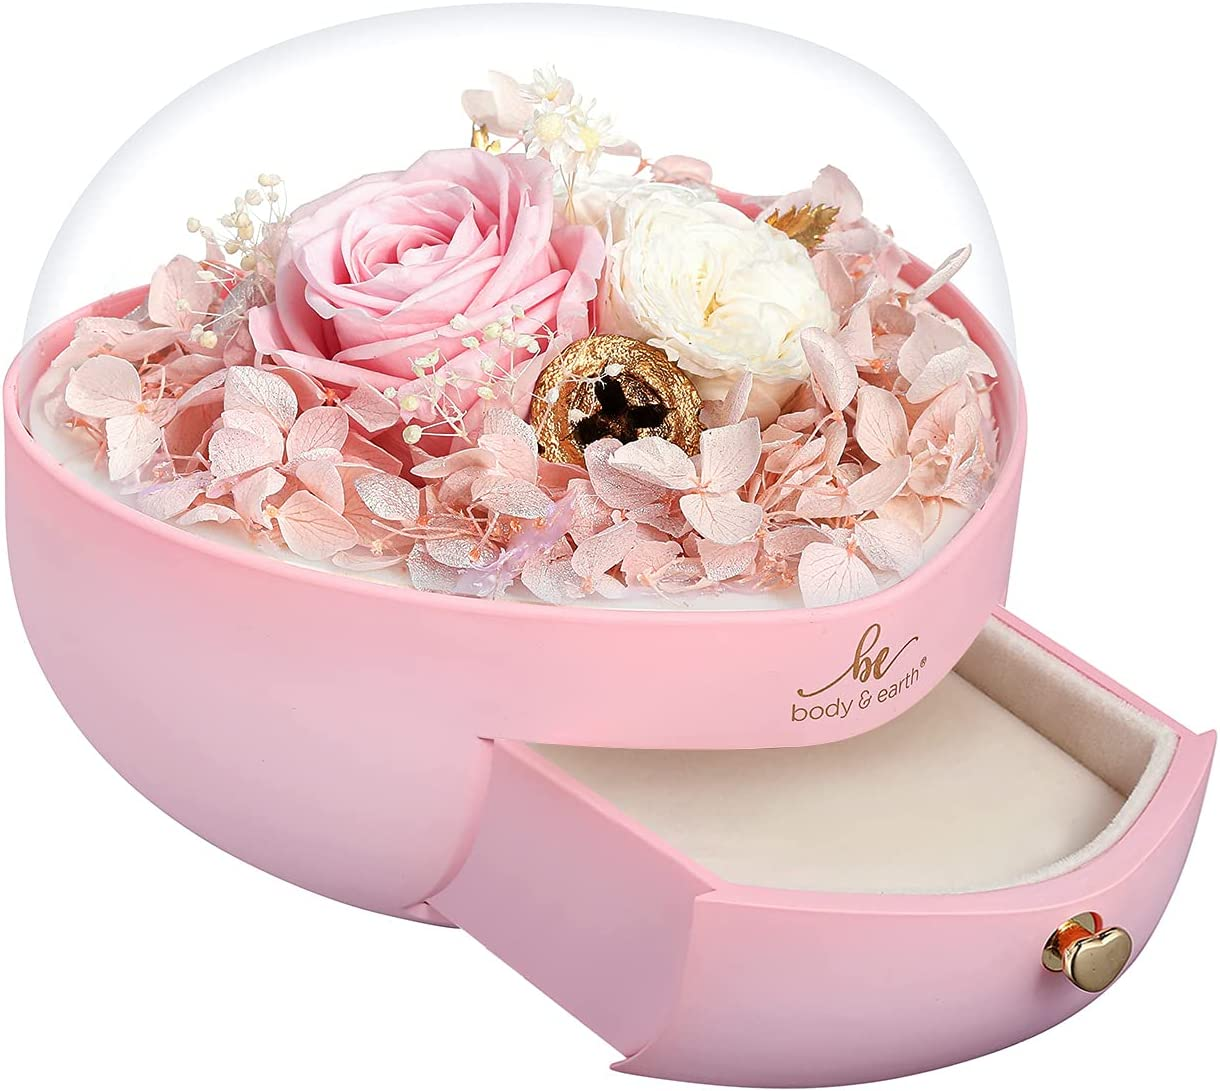 Buy Preserved Rose Flower Box,, Birthday Gifts for Women, Heart Boxes for Preserved Flowers, Pink Rose Gifts with Luxury Jewelry Gift Box, Valentines Day, Wedding Anniversary Decor Gift Online in India. B08PL21DWW